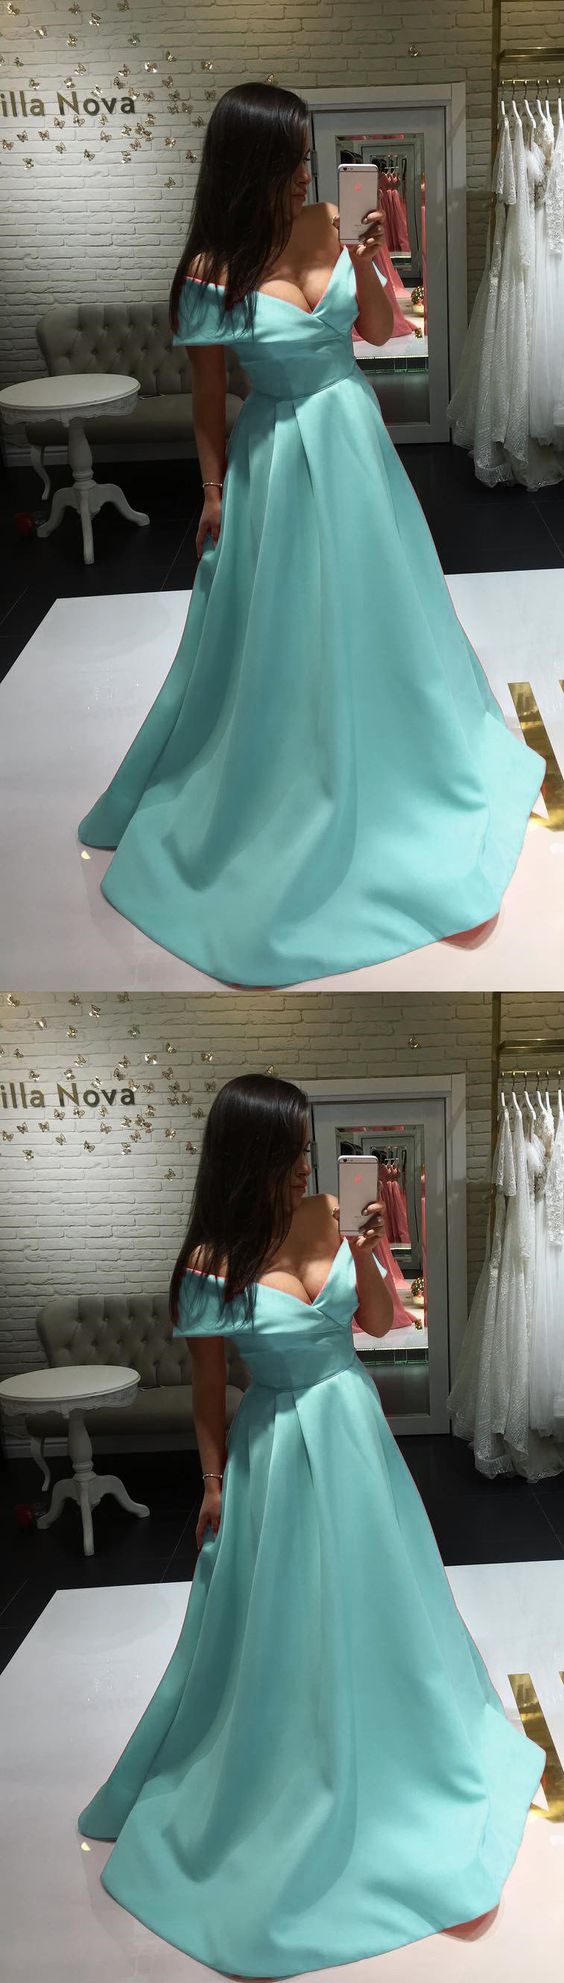 Cute A-line V-neck Off The Shoulder Evening Dresses Long Satin Baby Blue Prom Dresses 2019, D0196